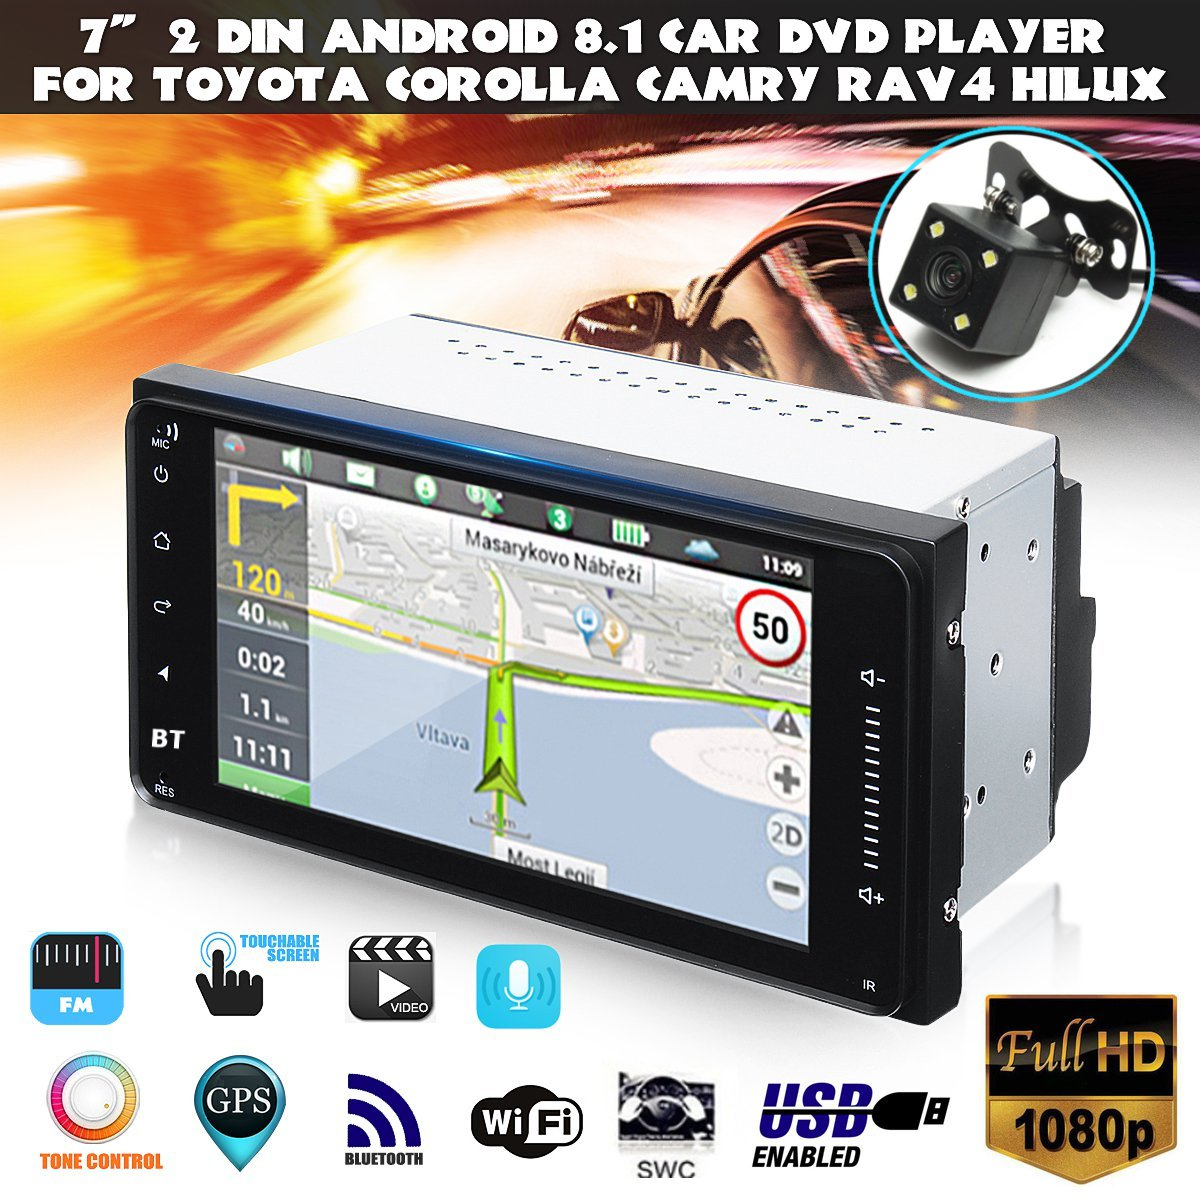 7 2 Din Android 8.1 Universal Car DVD Player WIFI GPS Stereo bluetooth Radio Indash For Toyota Corolla Camry Hilux RAV47 2 Din Android 8.1 Universal Car DVD Player WIFI GPS Stereo bluetooth Radio Indash For Toyota Corolla Camry Hilux RAV4